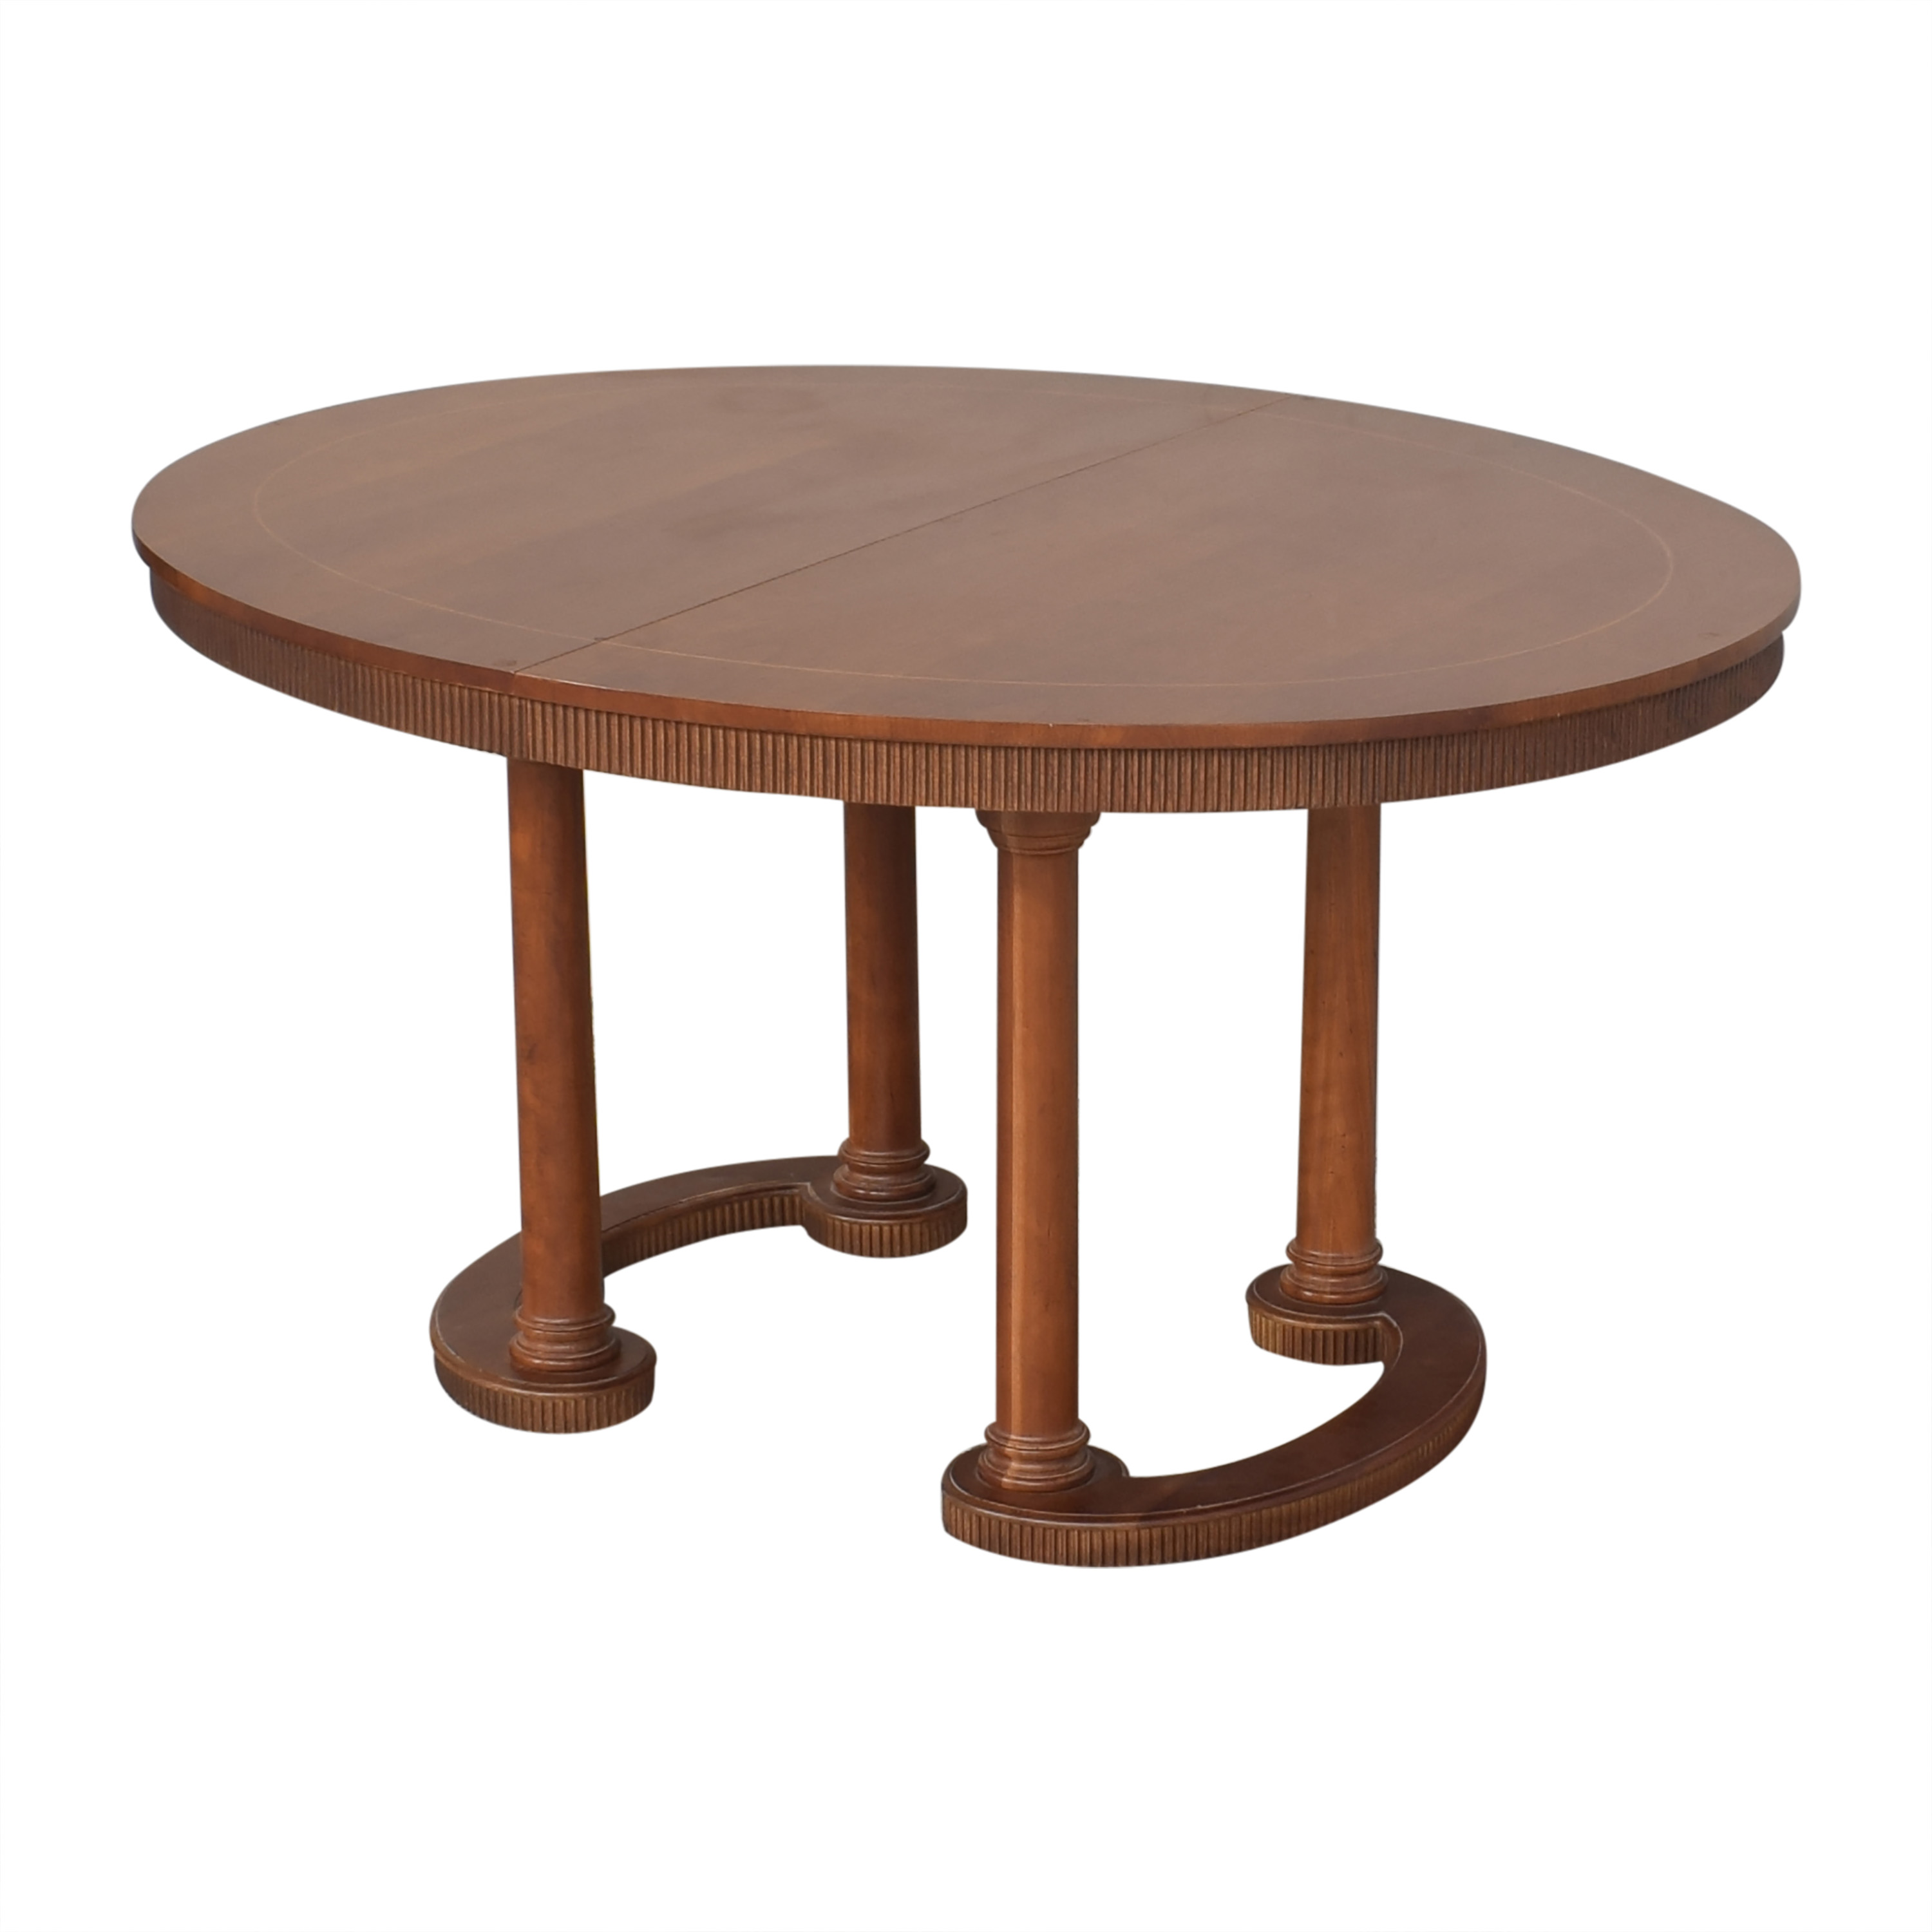 Baker Furniture Baker Furniture Oval Extendable Dining Table second hand